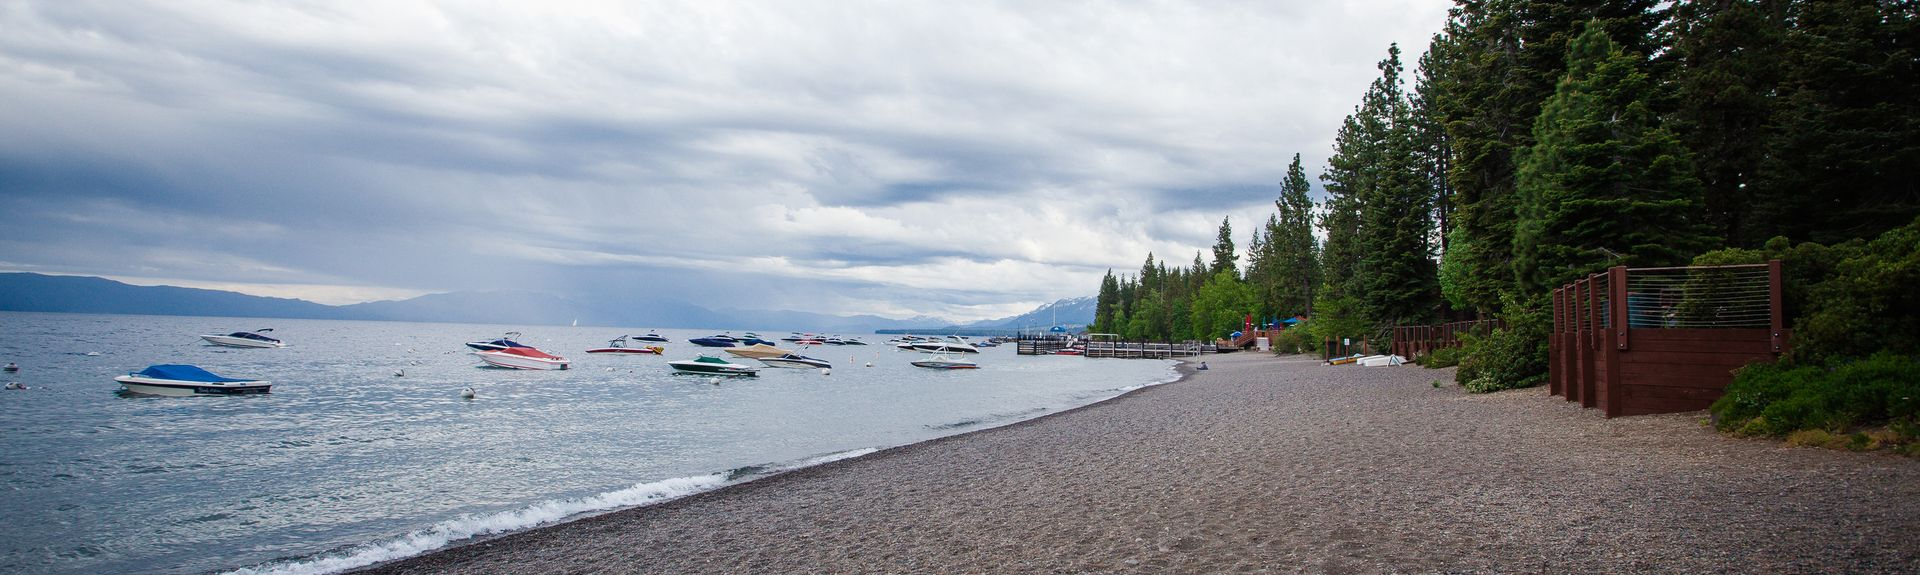 Tahoe Park, Tahoe City, CA, USA